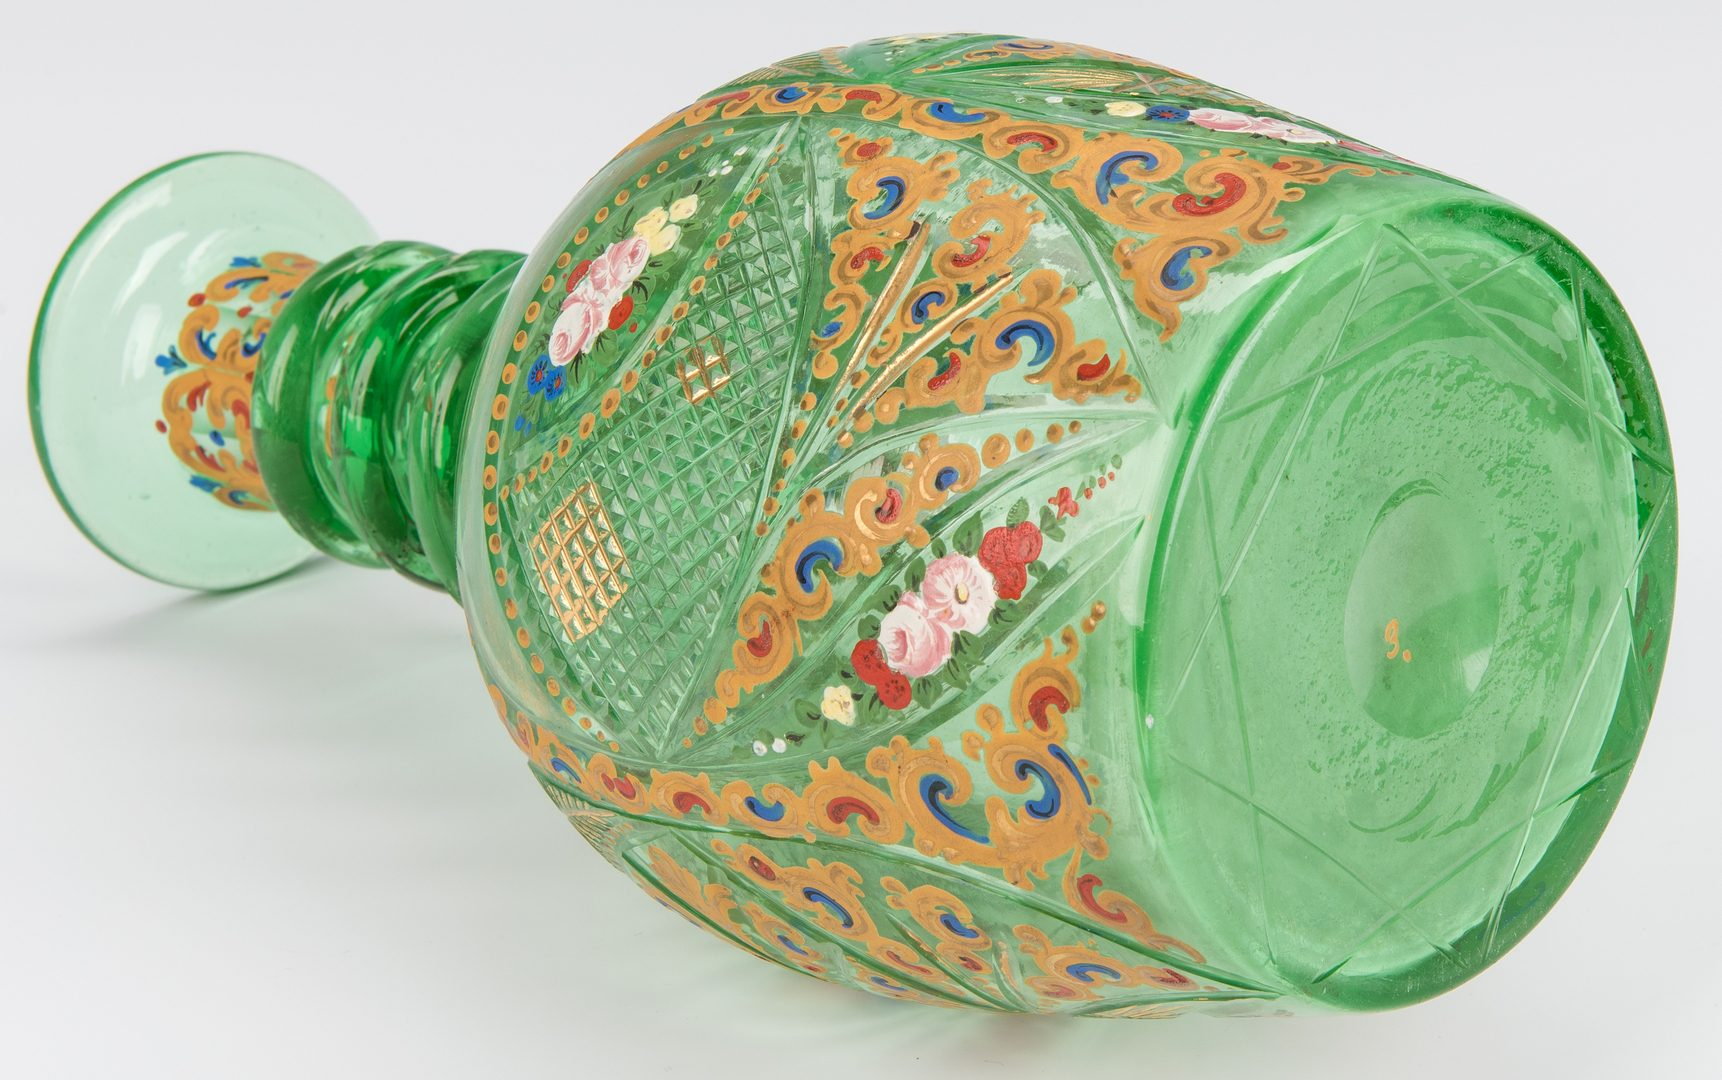 Lot 227: 2 Bohemian Art Glass Decanters